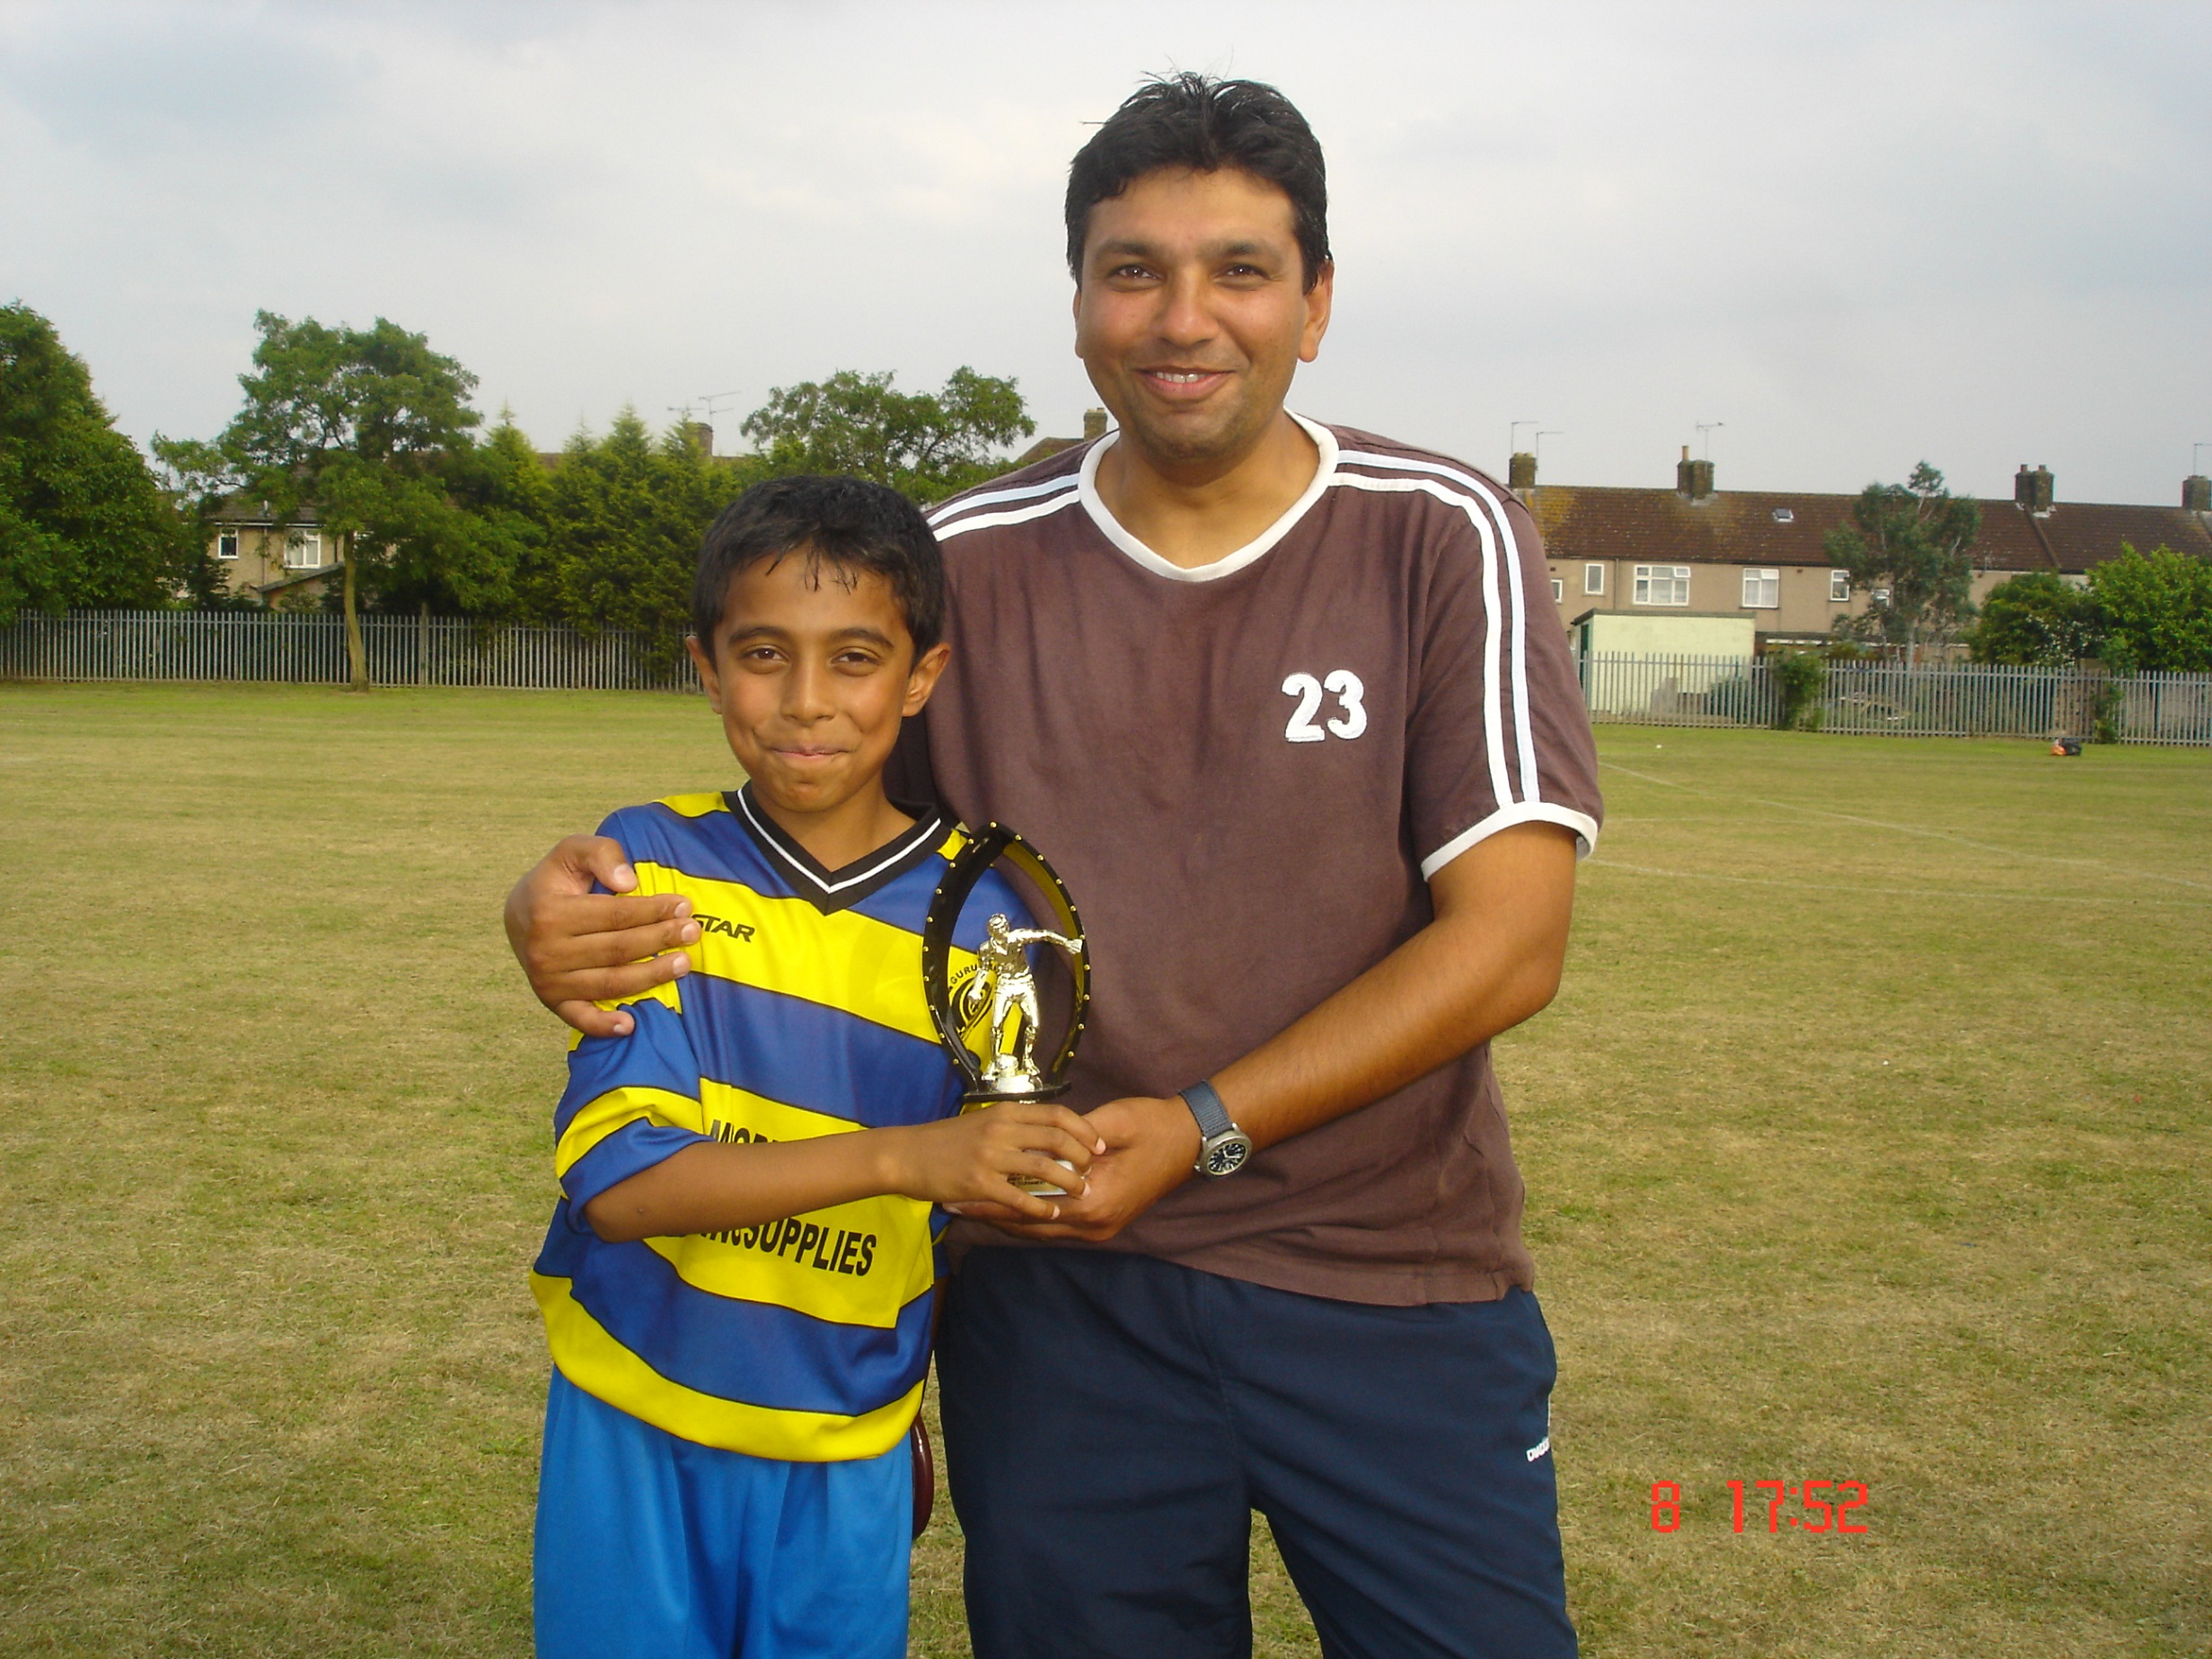 U10s Barking 2007 player of tournament - Arun Suman